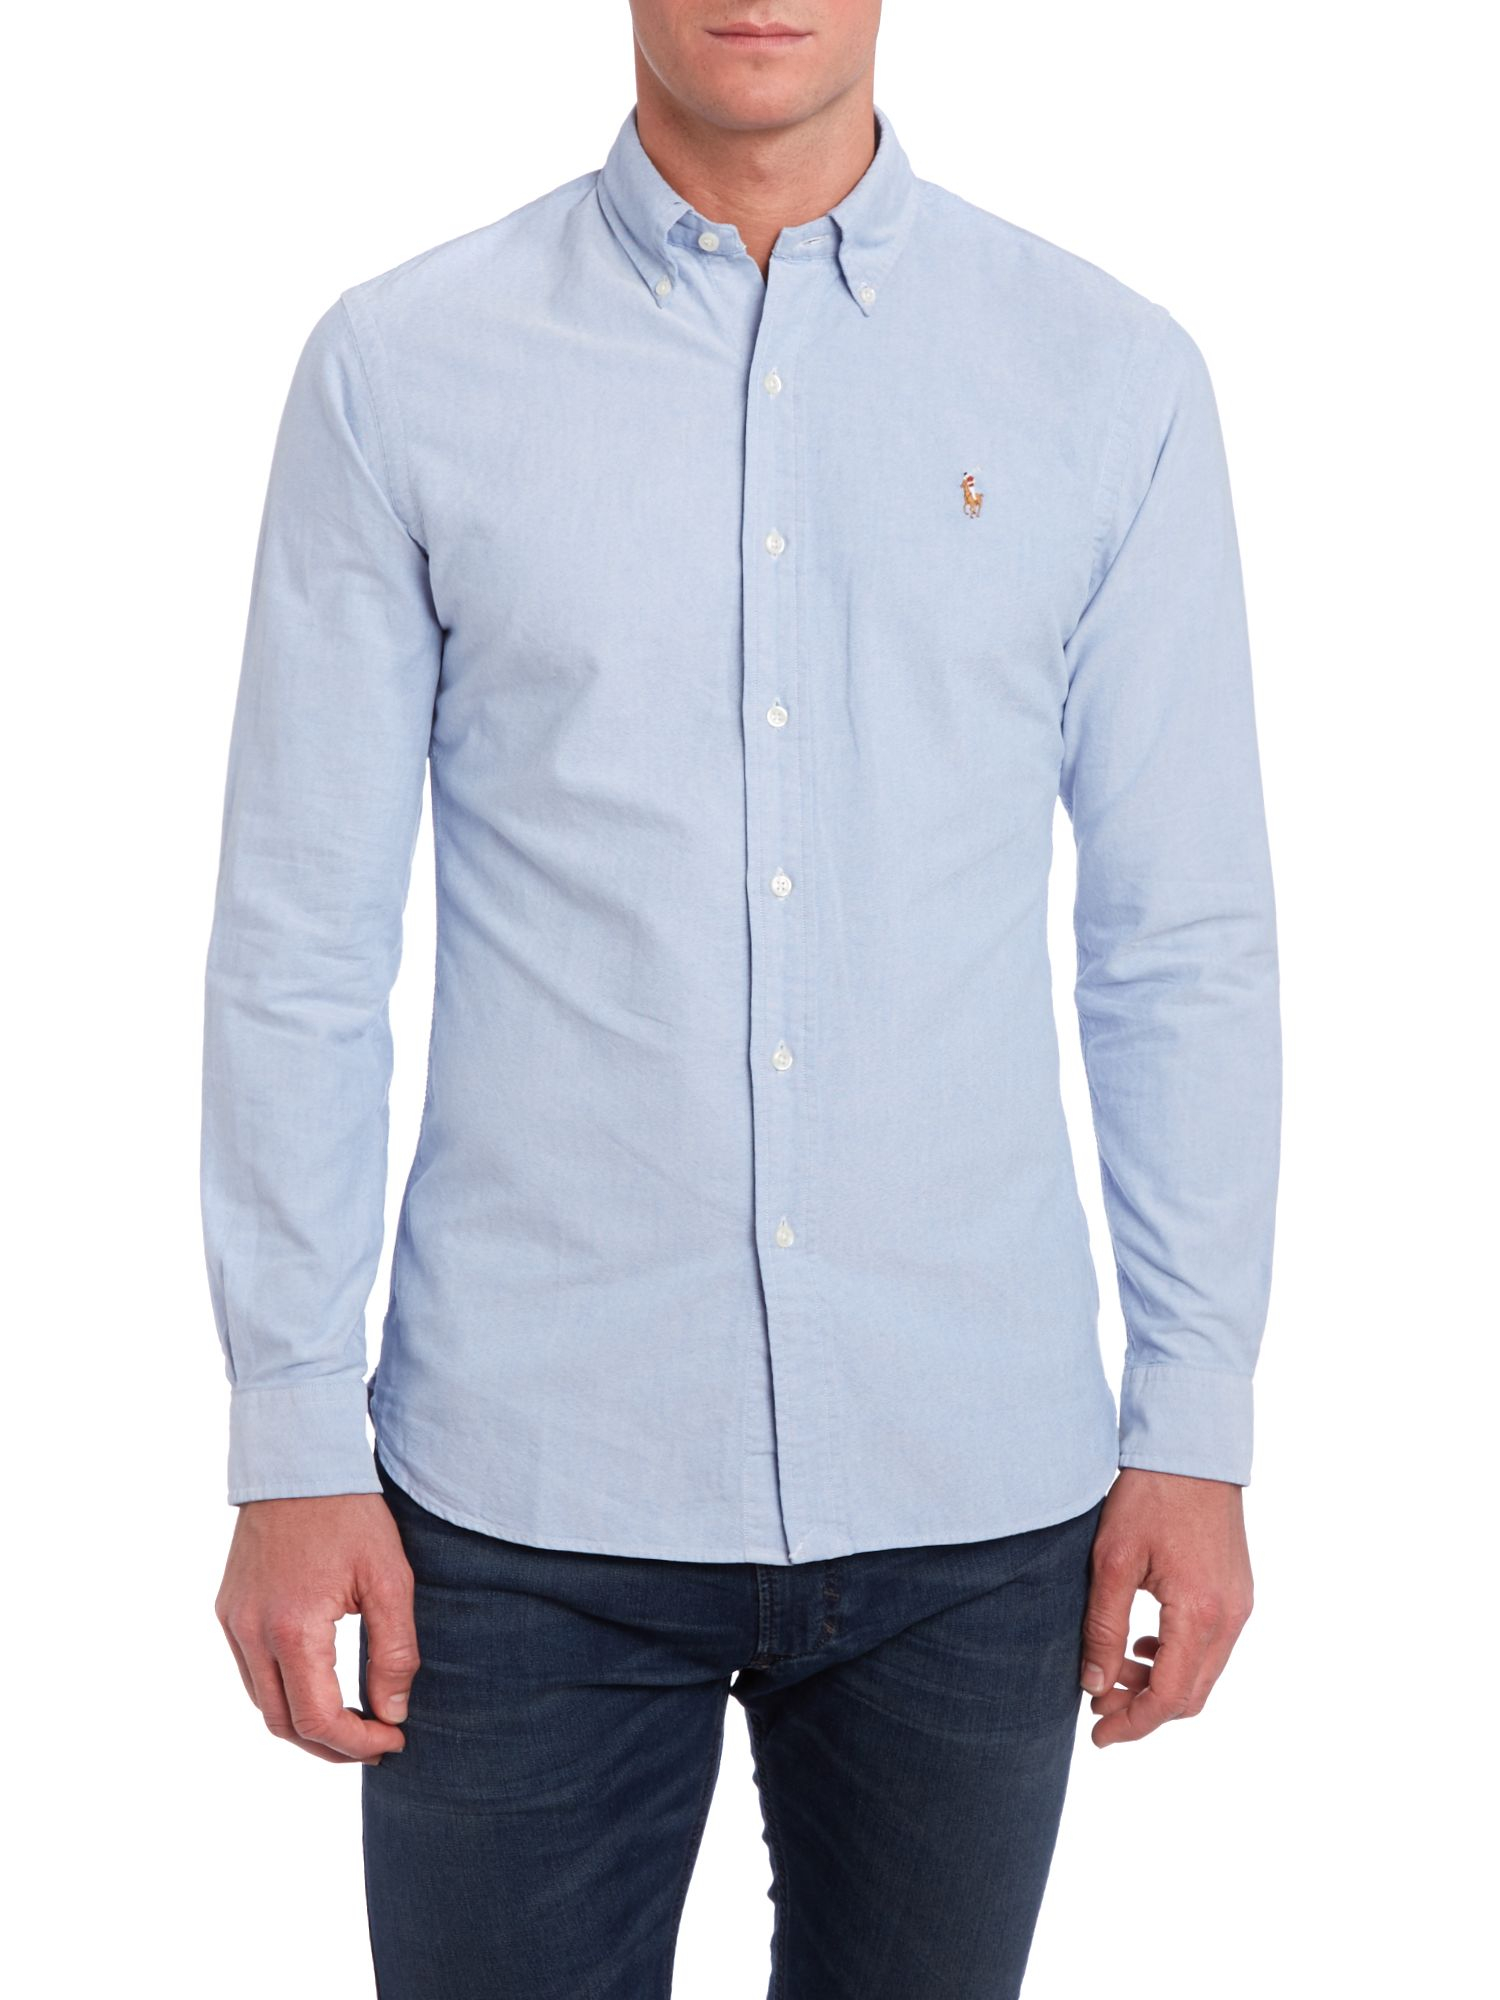 polo ralph lauren long sleeve slim fit oxford shirt in blue for men lyst. Black Bedroom Furniture Sets. Home Design Ideas